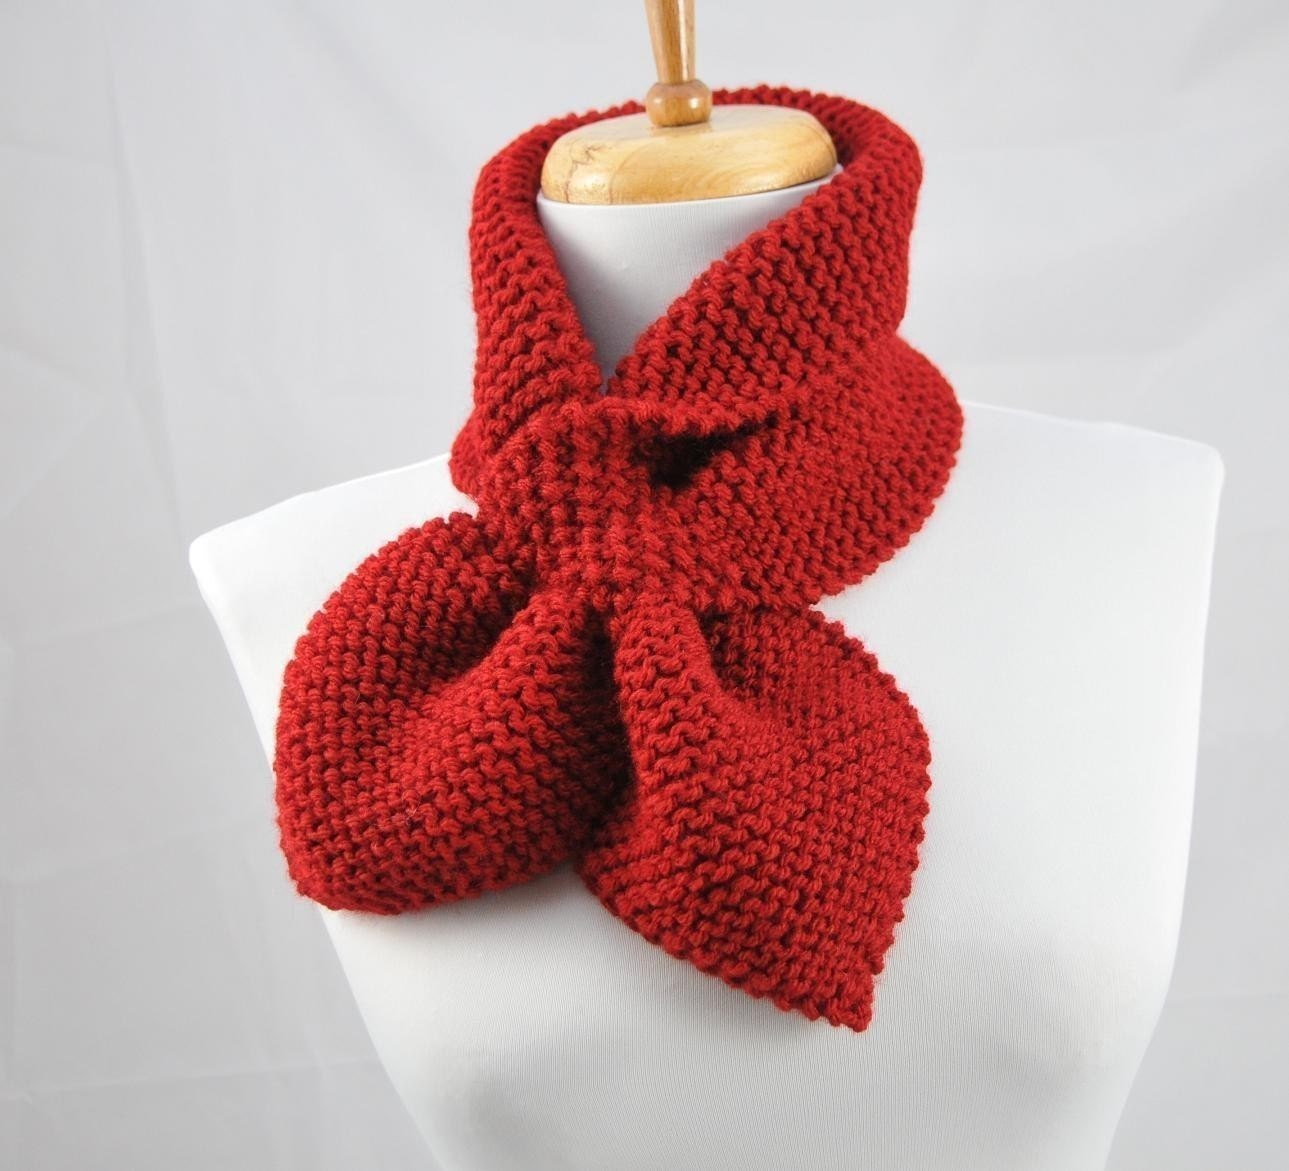 Knitted Keyhole Scarf Pattern : Knitting Pattern Knit Keyhole Pull Through Stay Put by PhylPhil